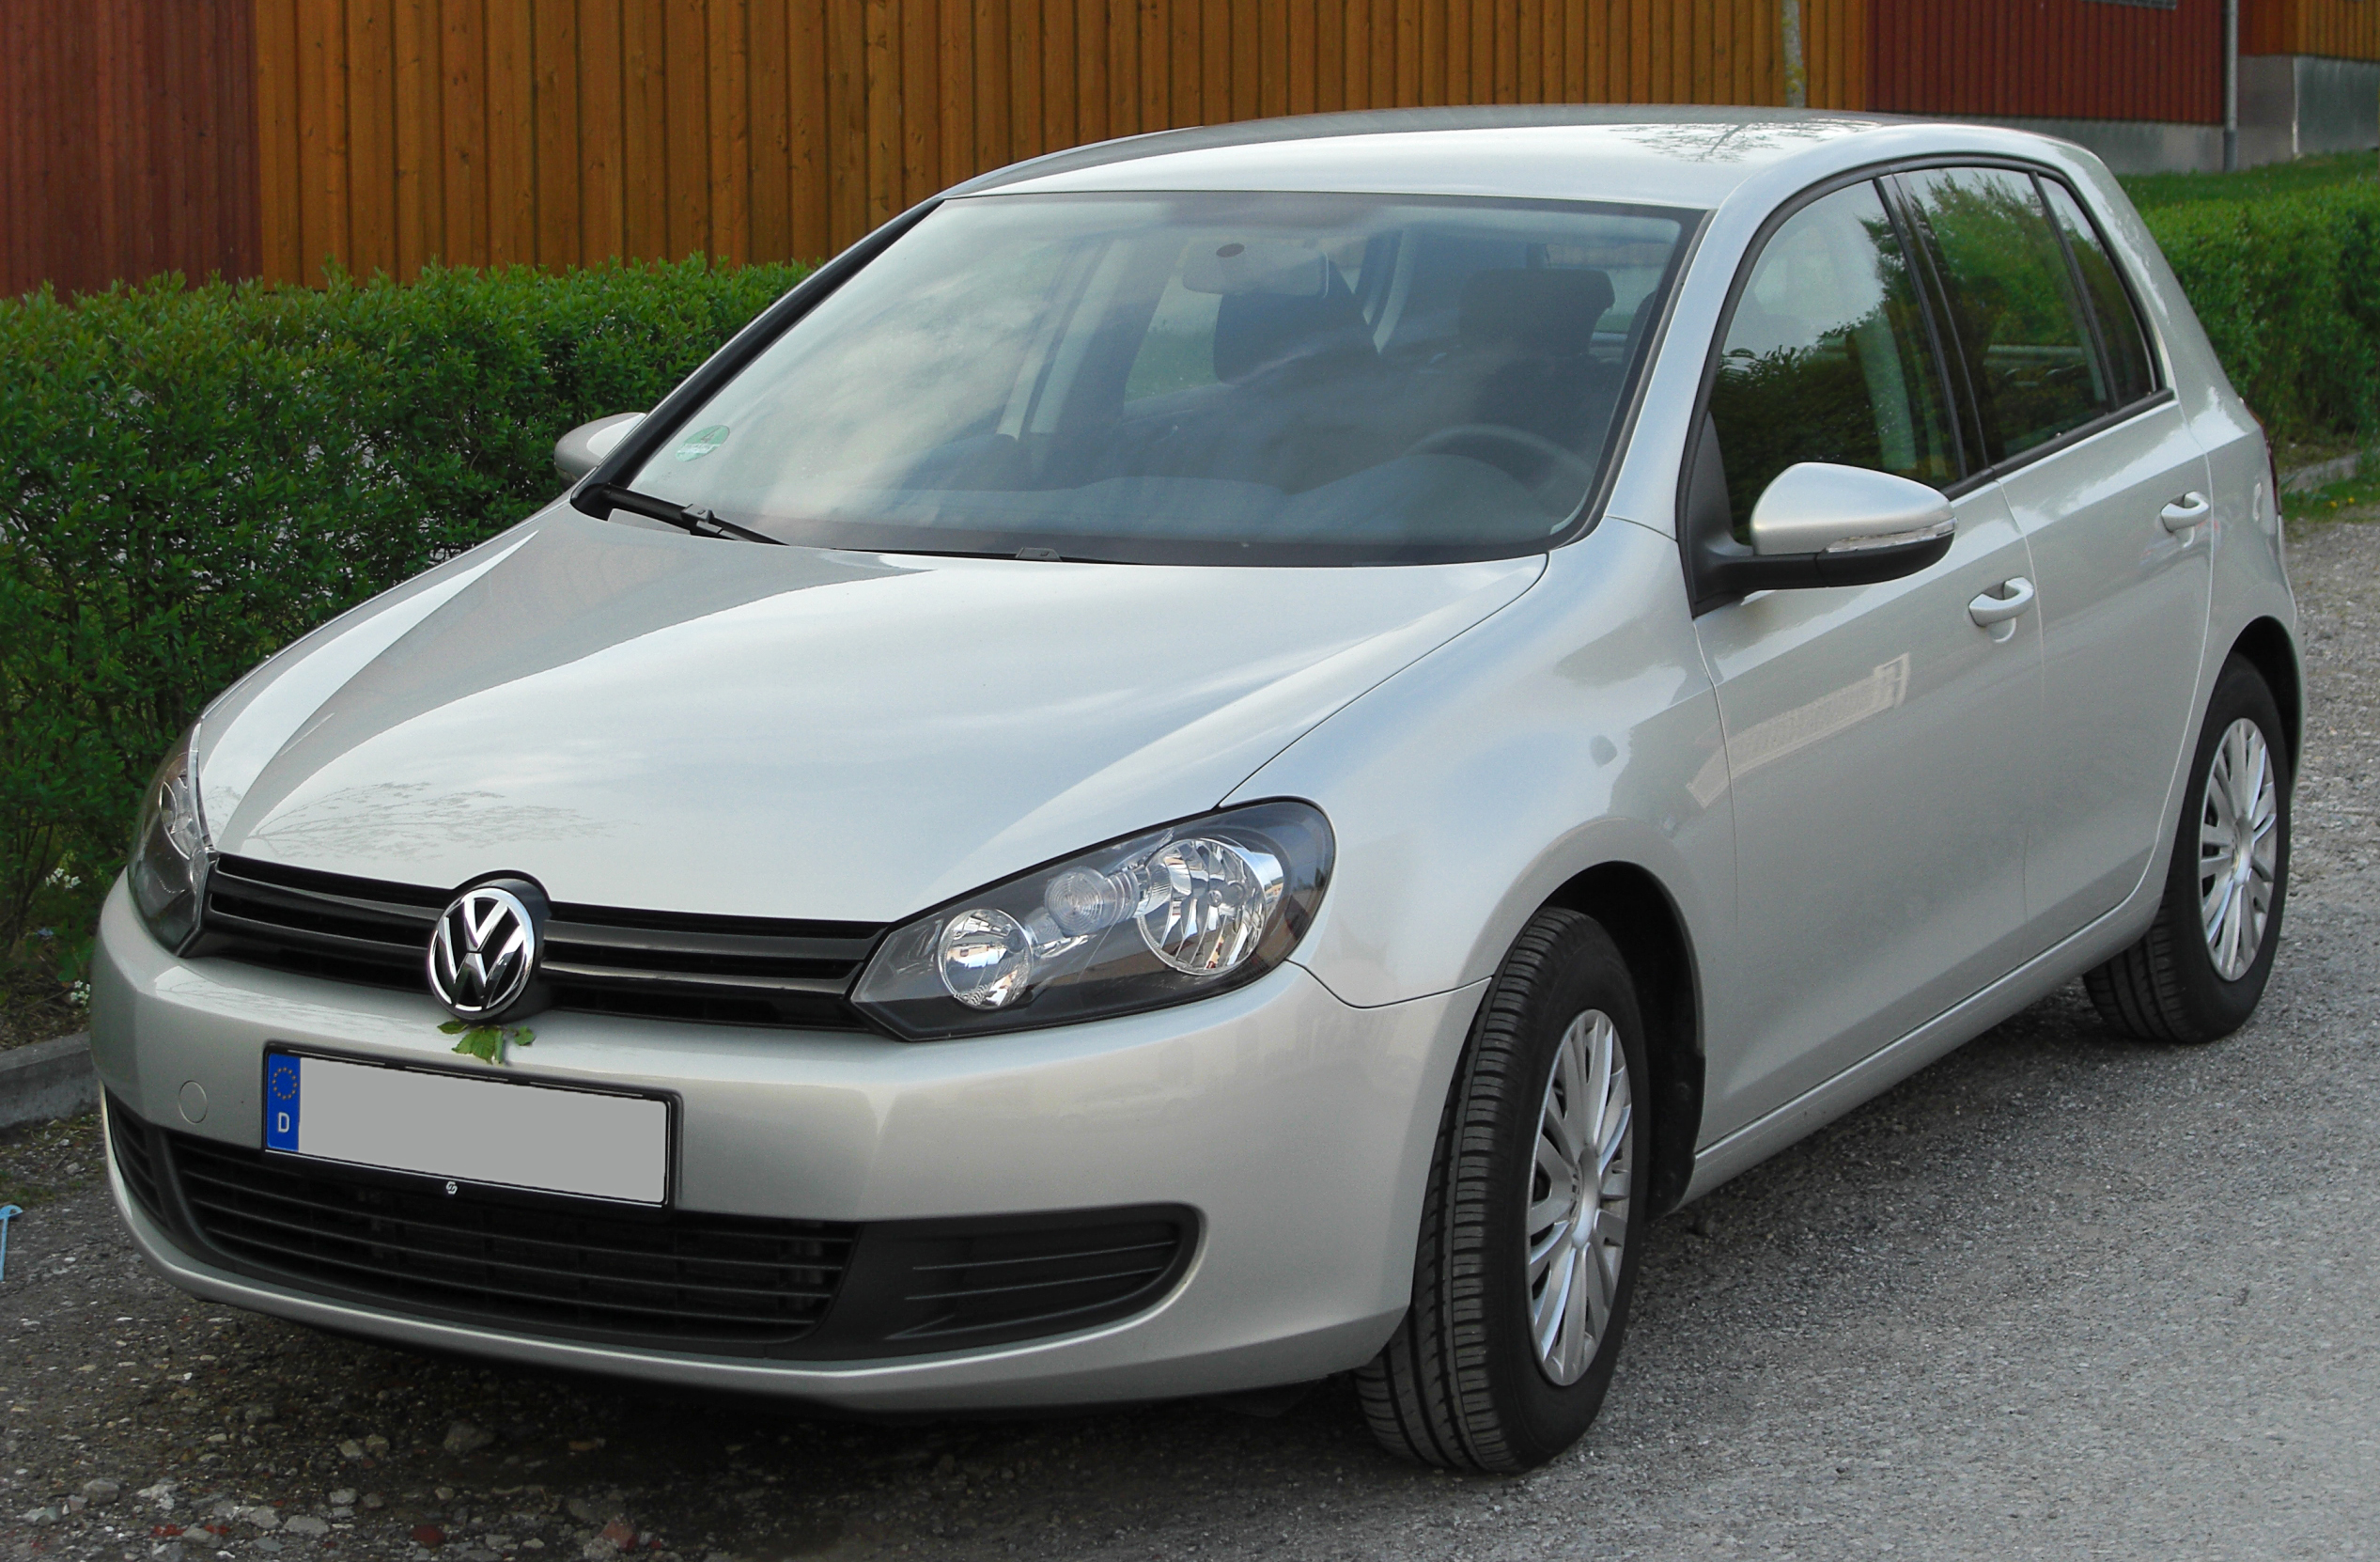 File:VW Golf VI front 20100509.jpg - Wikimedia Commons